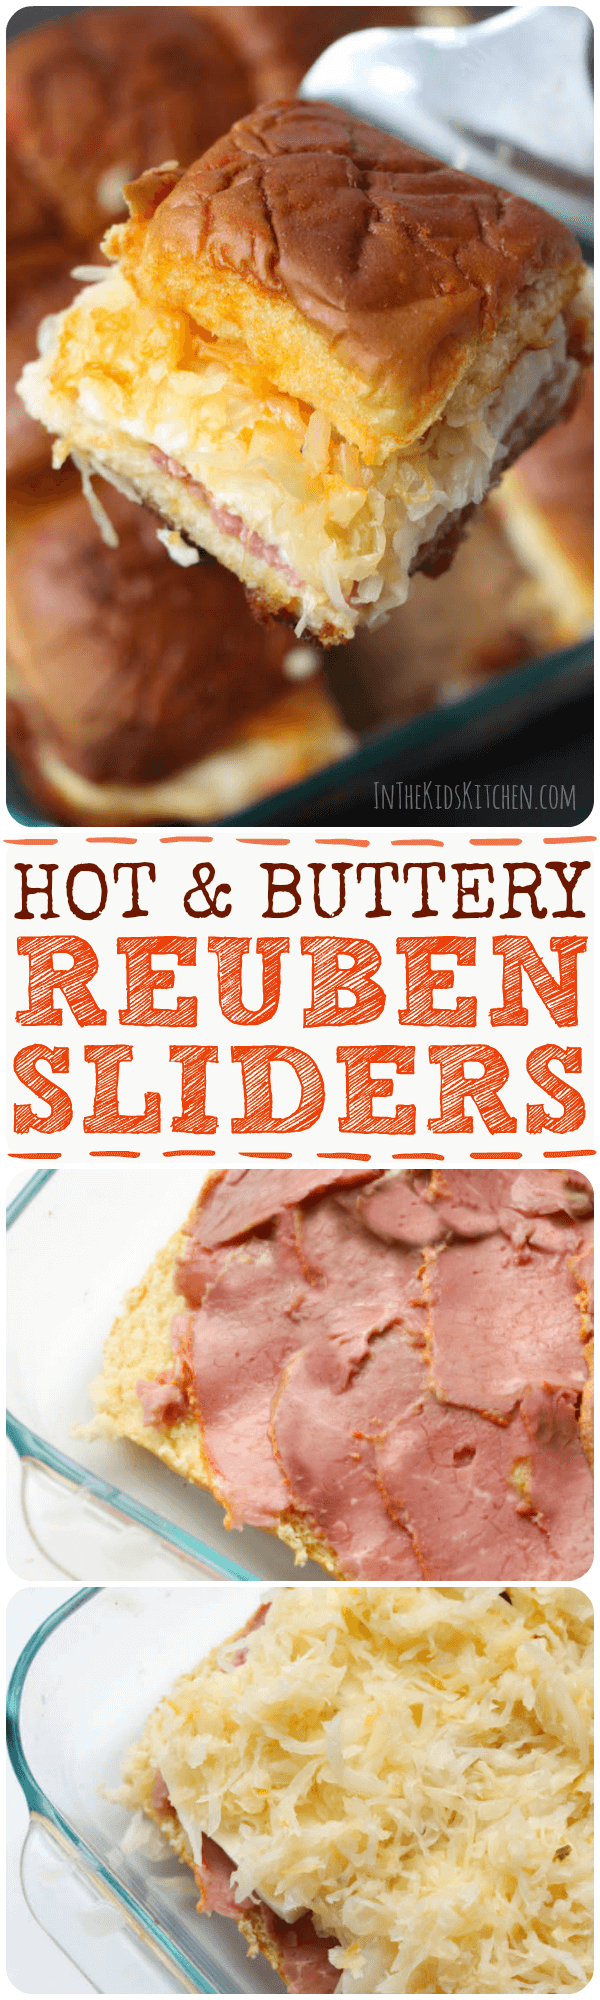 "The perfect mini sandwich - Hot out of the oven, with a ""secret"" butter dressing cooked into the bread, these Reuben Sliders literally melt in your mouth!"